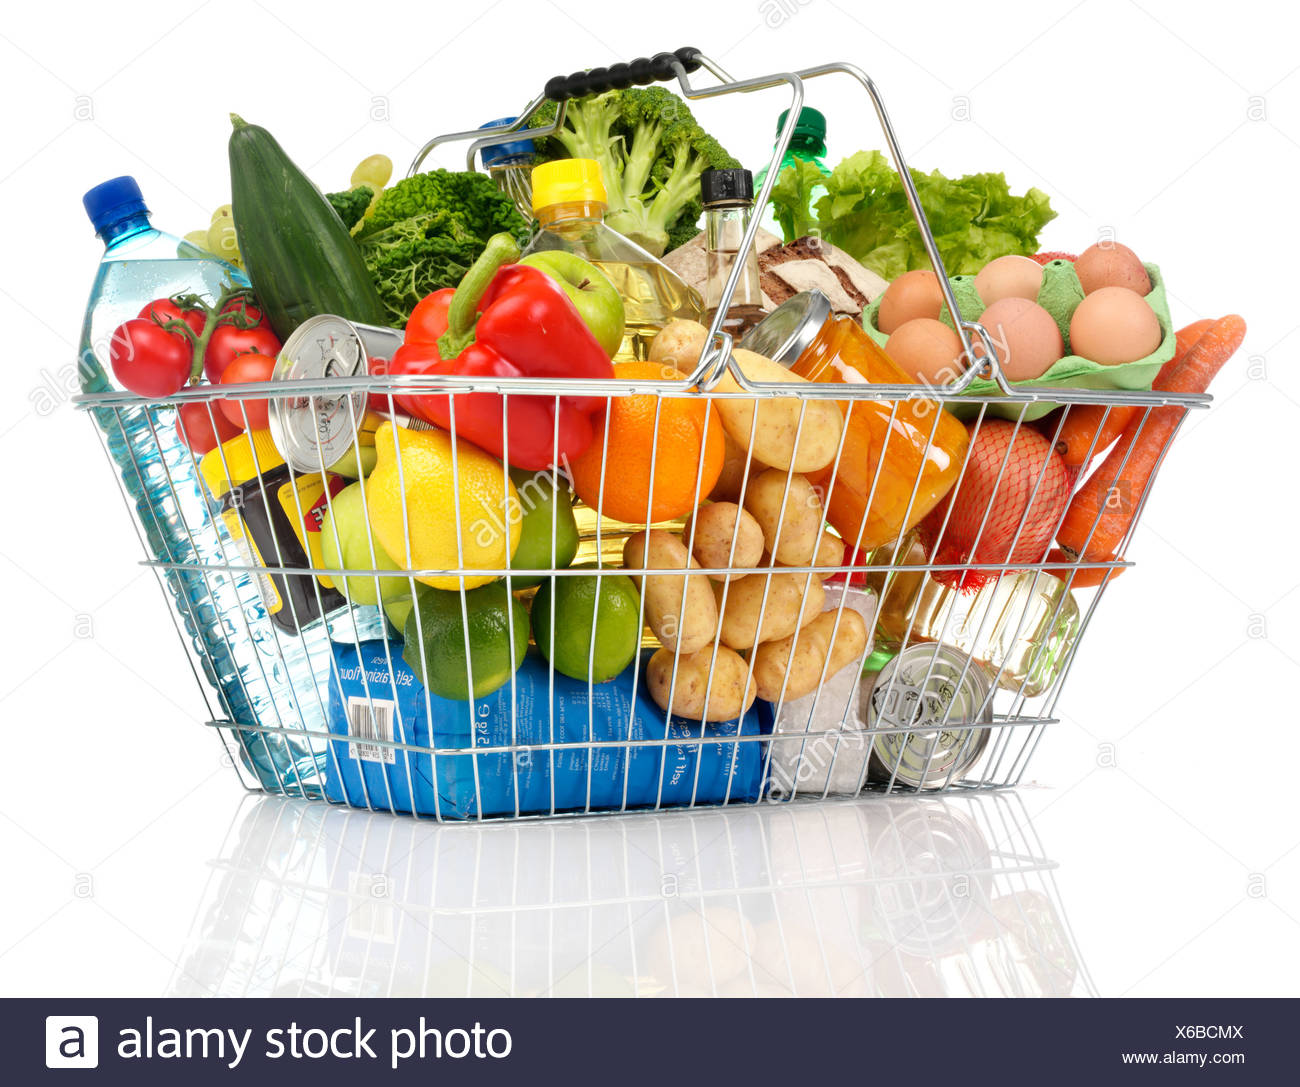 GROCERIES IN SHOPPING BASKET - Stock Image